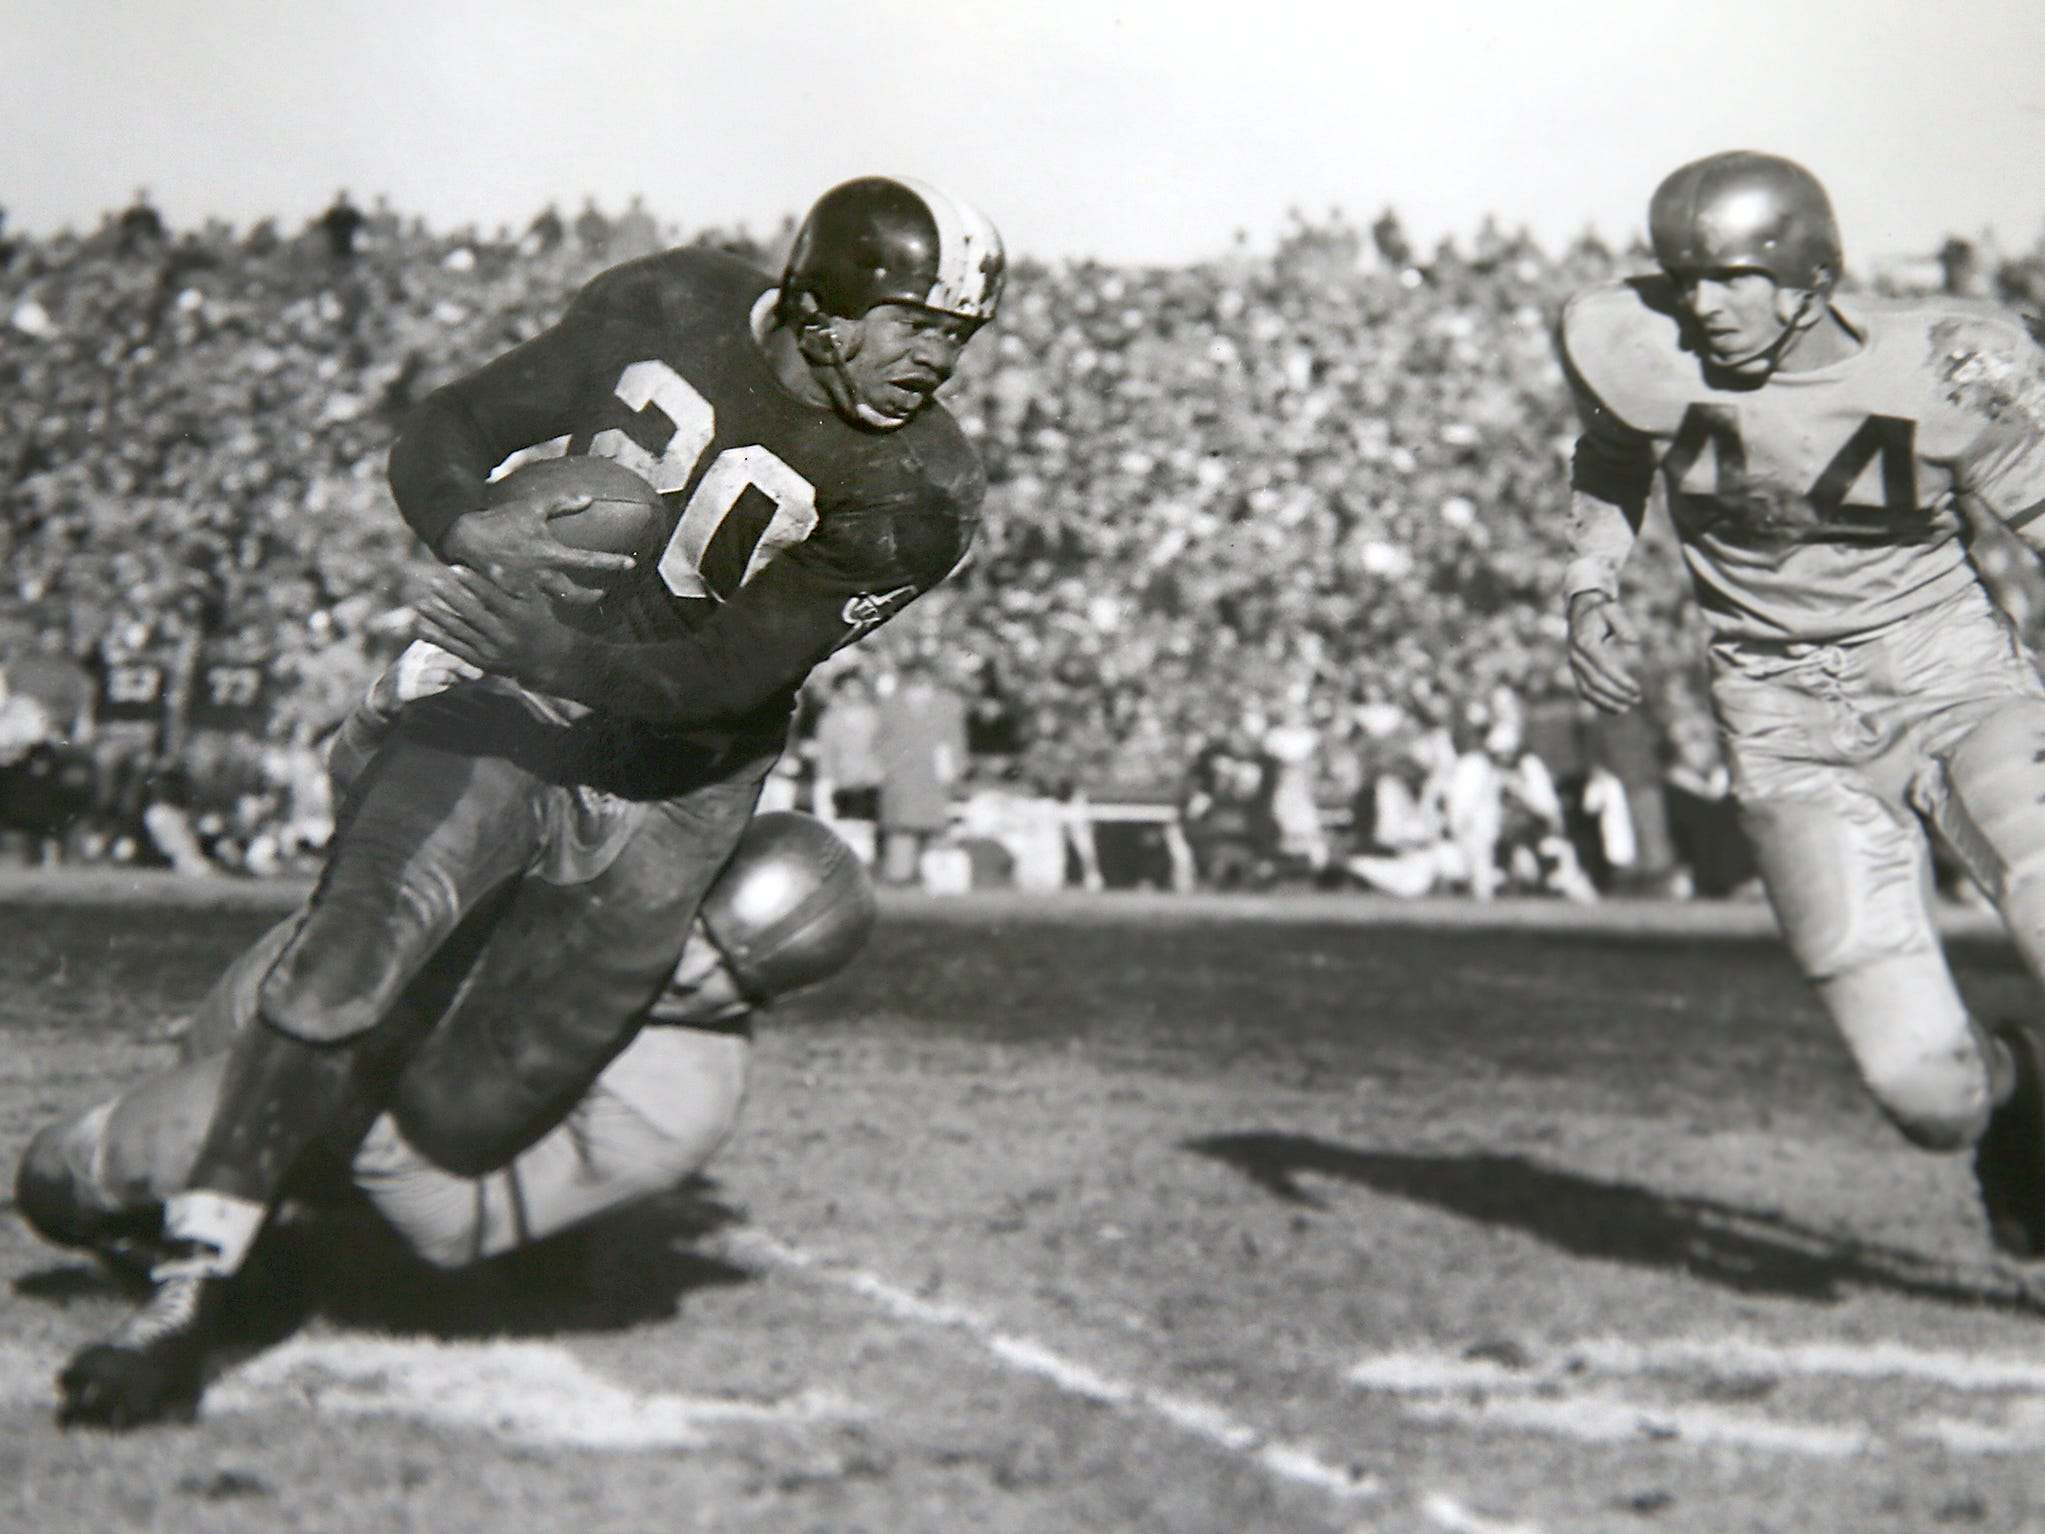 George Taliaferro, 91, former IU football star, was the first African-American drafted by an NFL team. Here is a submitted photo of him when he played for Baltimore Colts.